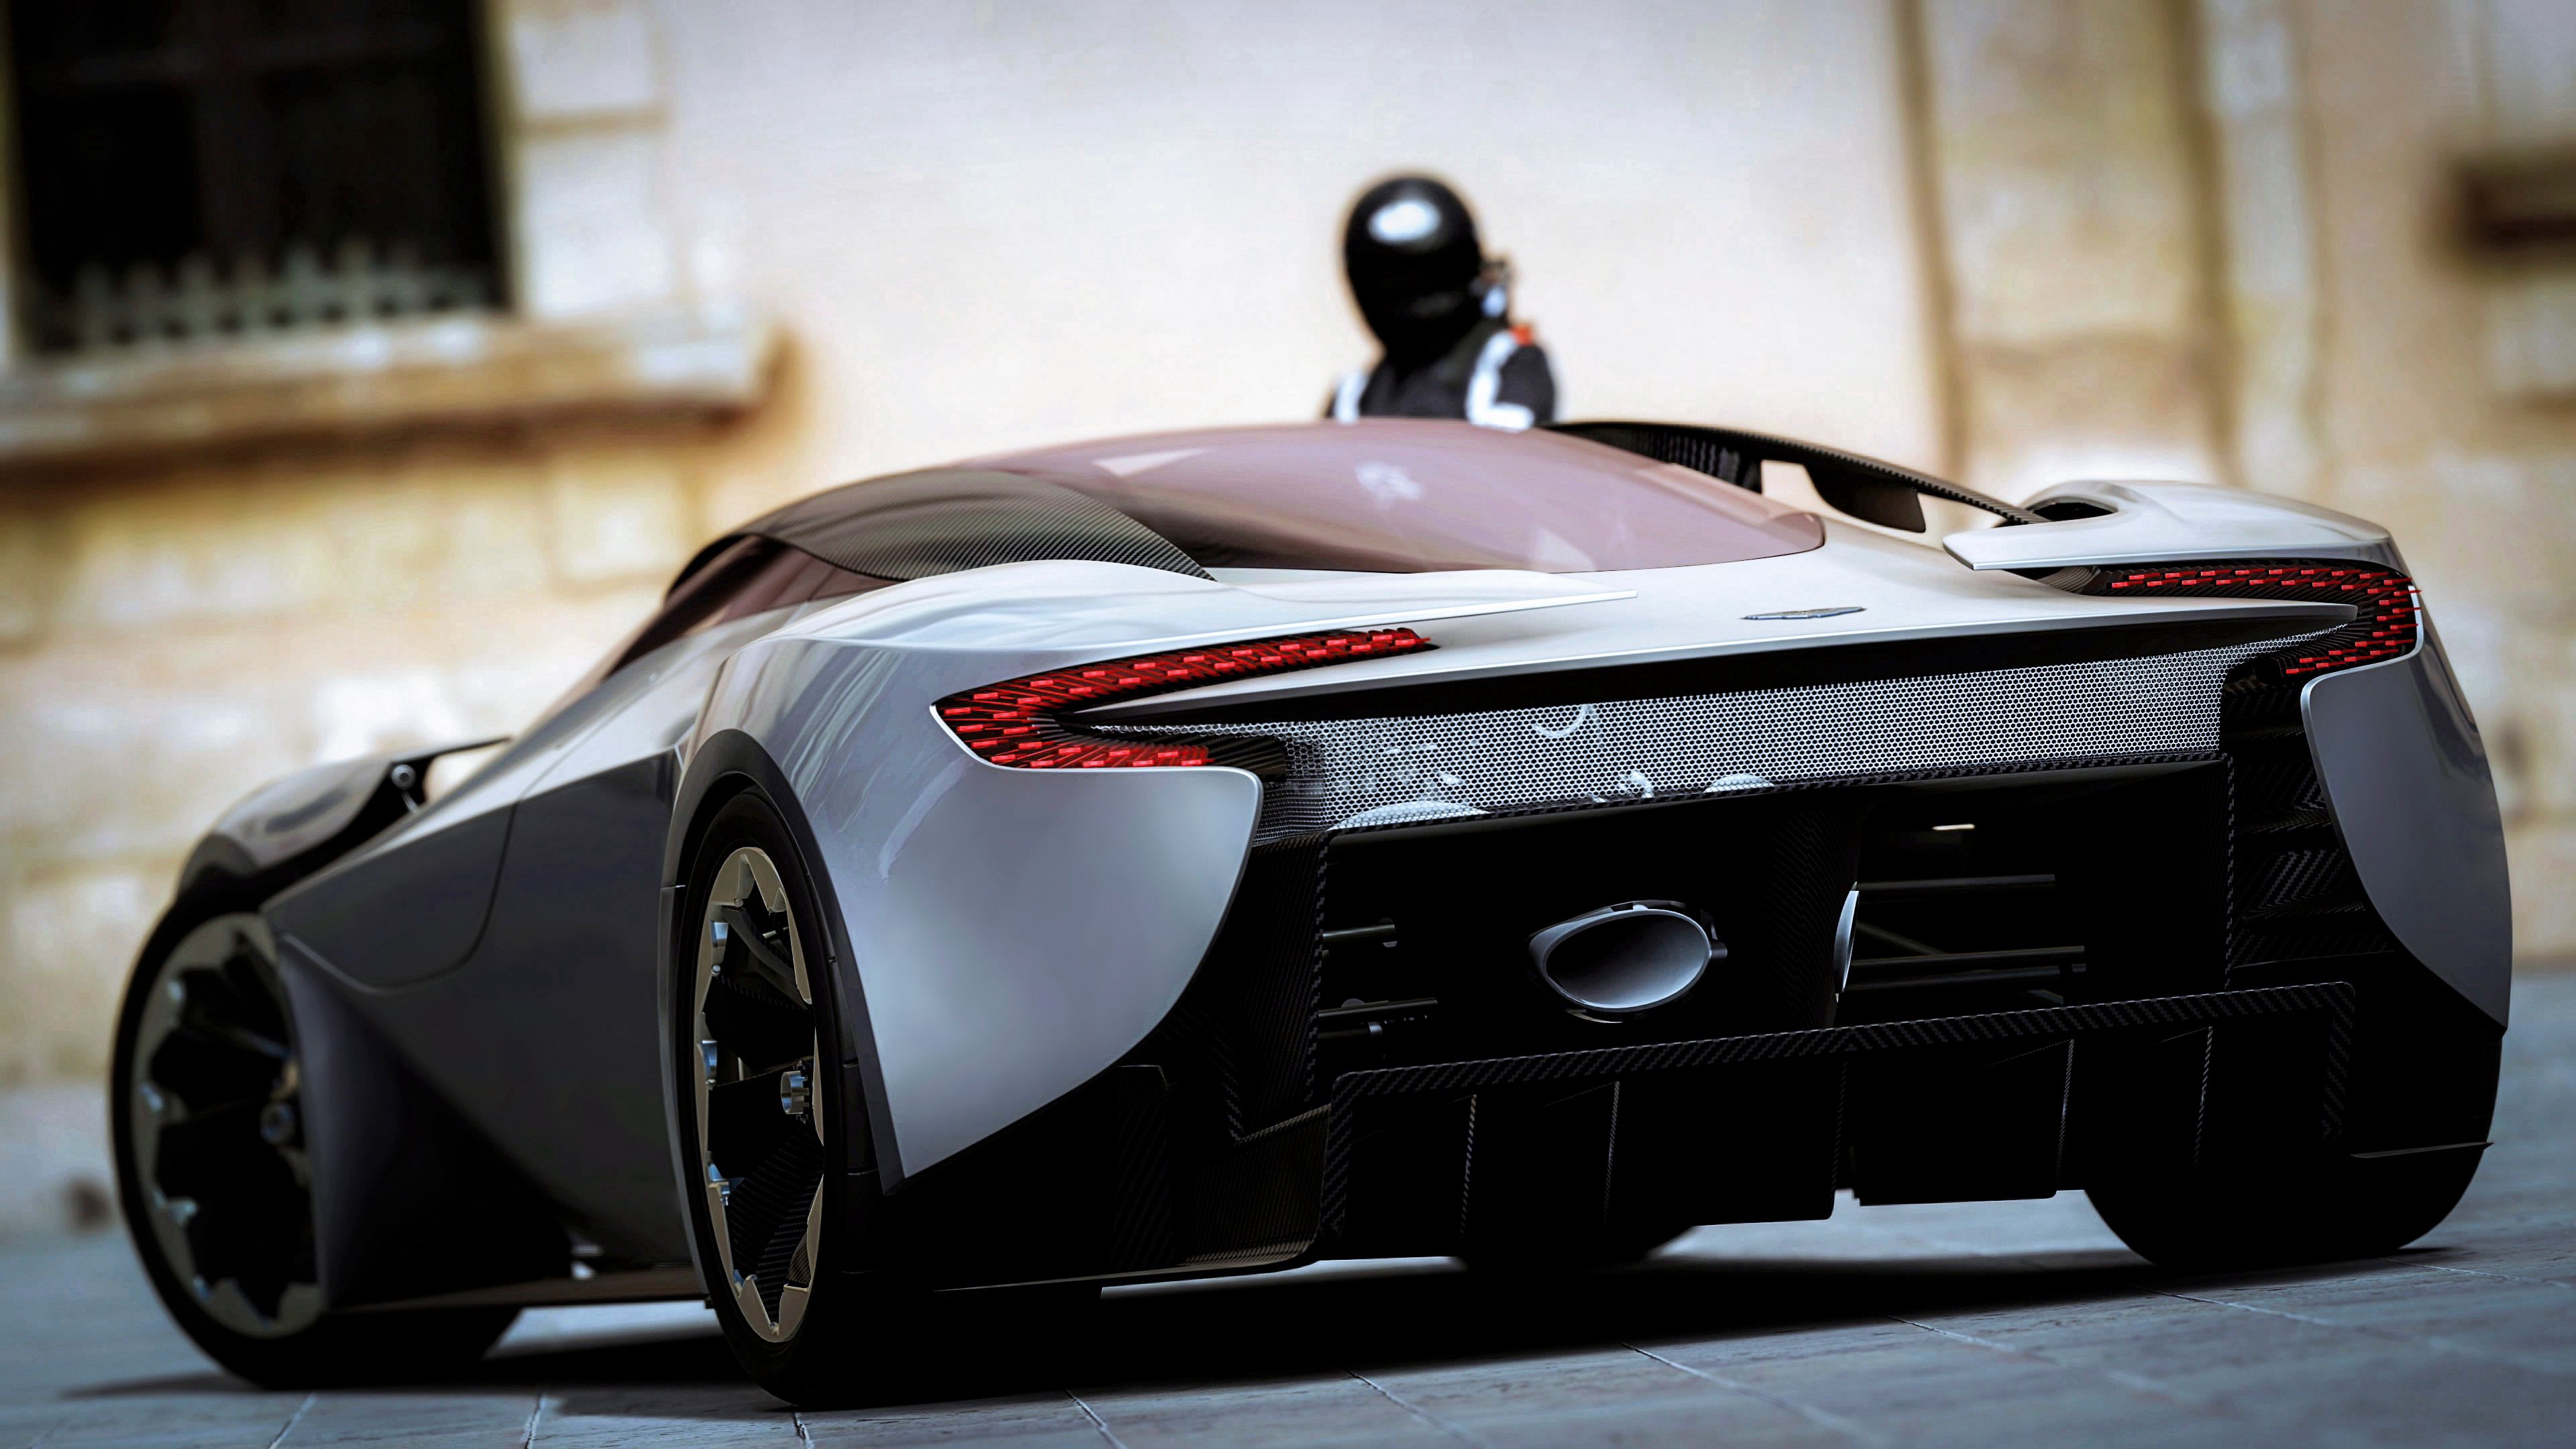 70669 download wallpaper Sports, Aston Martin, Cars, Sports Car, Back View, Rear View screensavers and pictures for free